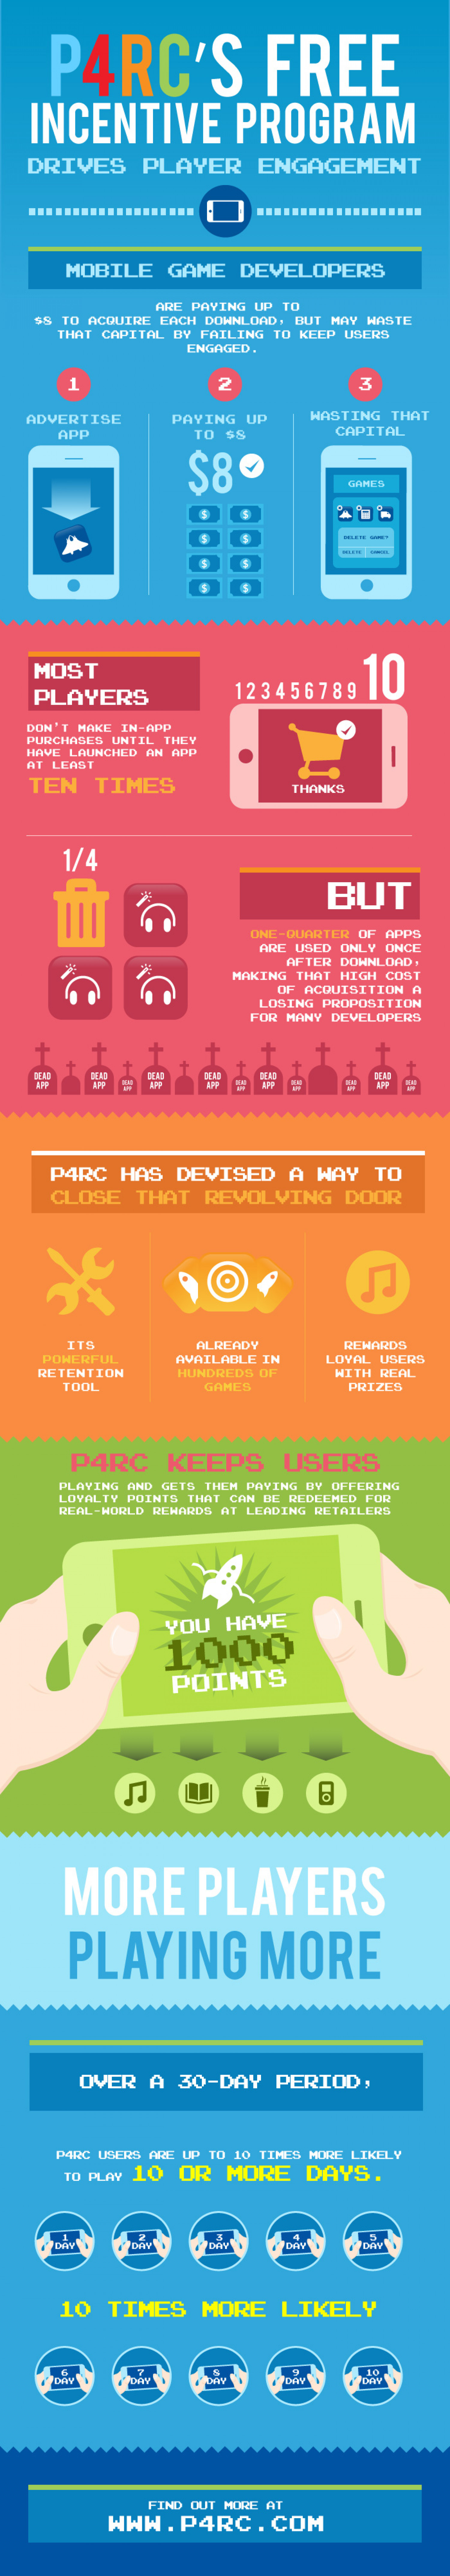 How To Drive Player Engagement In Mobile Games Infographic